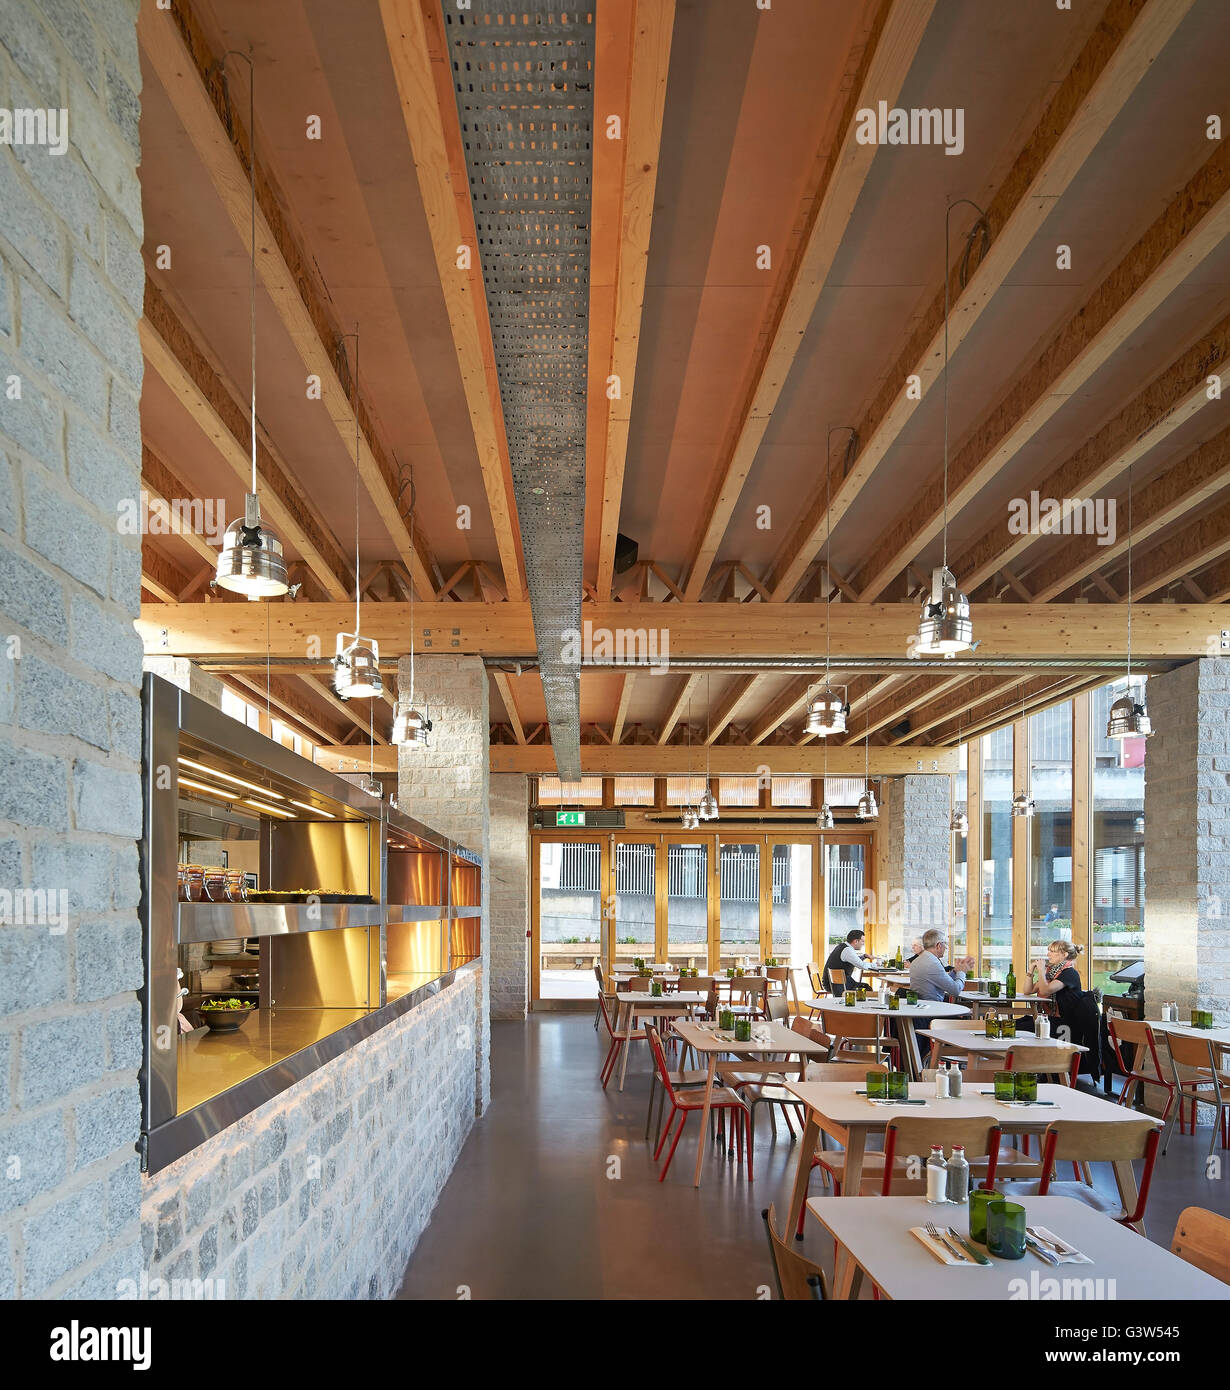 Restaurant Interior With Open Plan Kitchen Counter. The